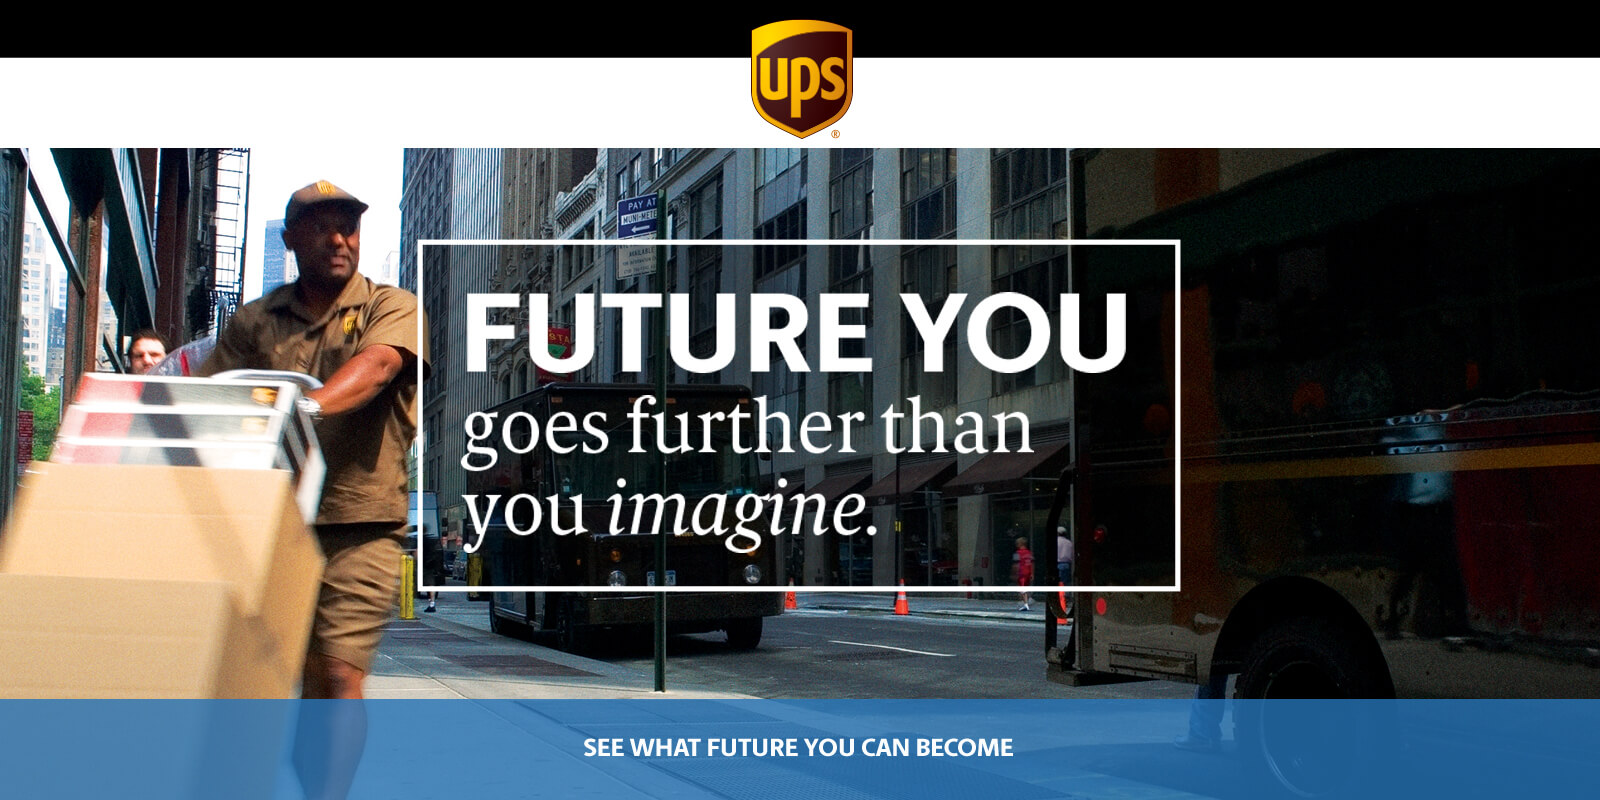 Part-time Dockworker at United Parcel Service (UPS)